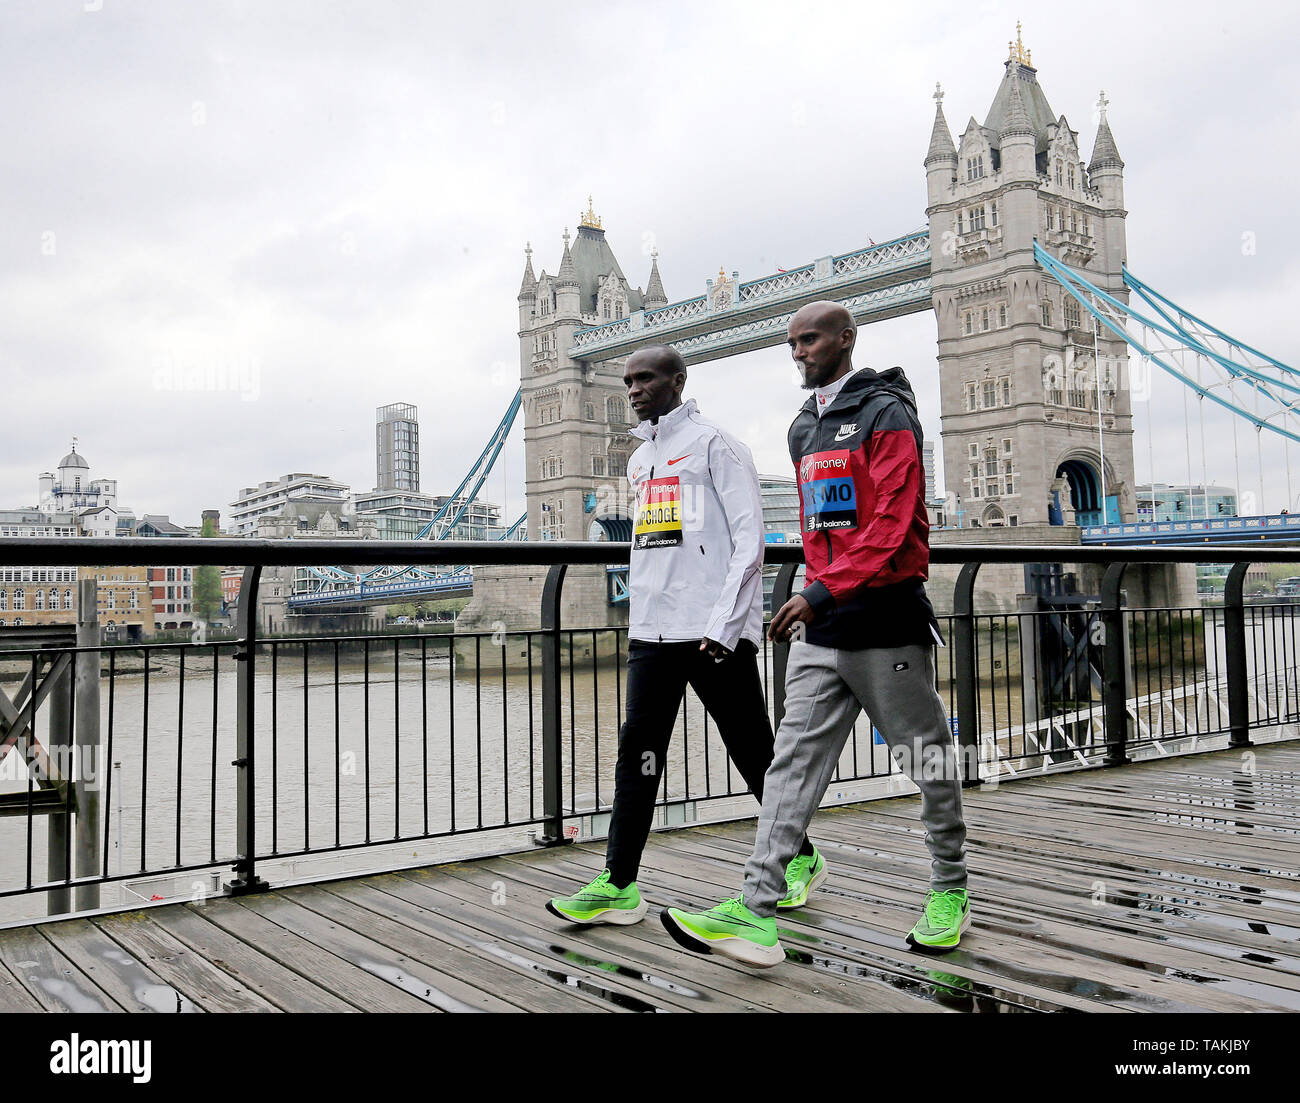 Photocall For The 2019 London Marathon At The Tower Hotel In